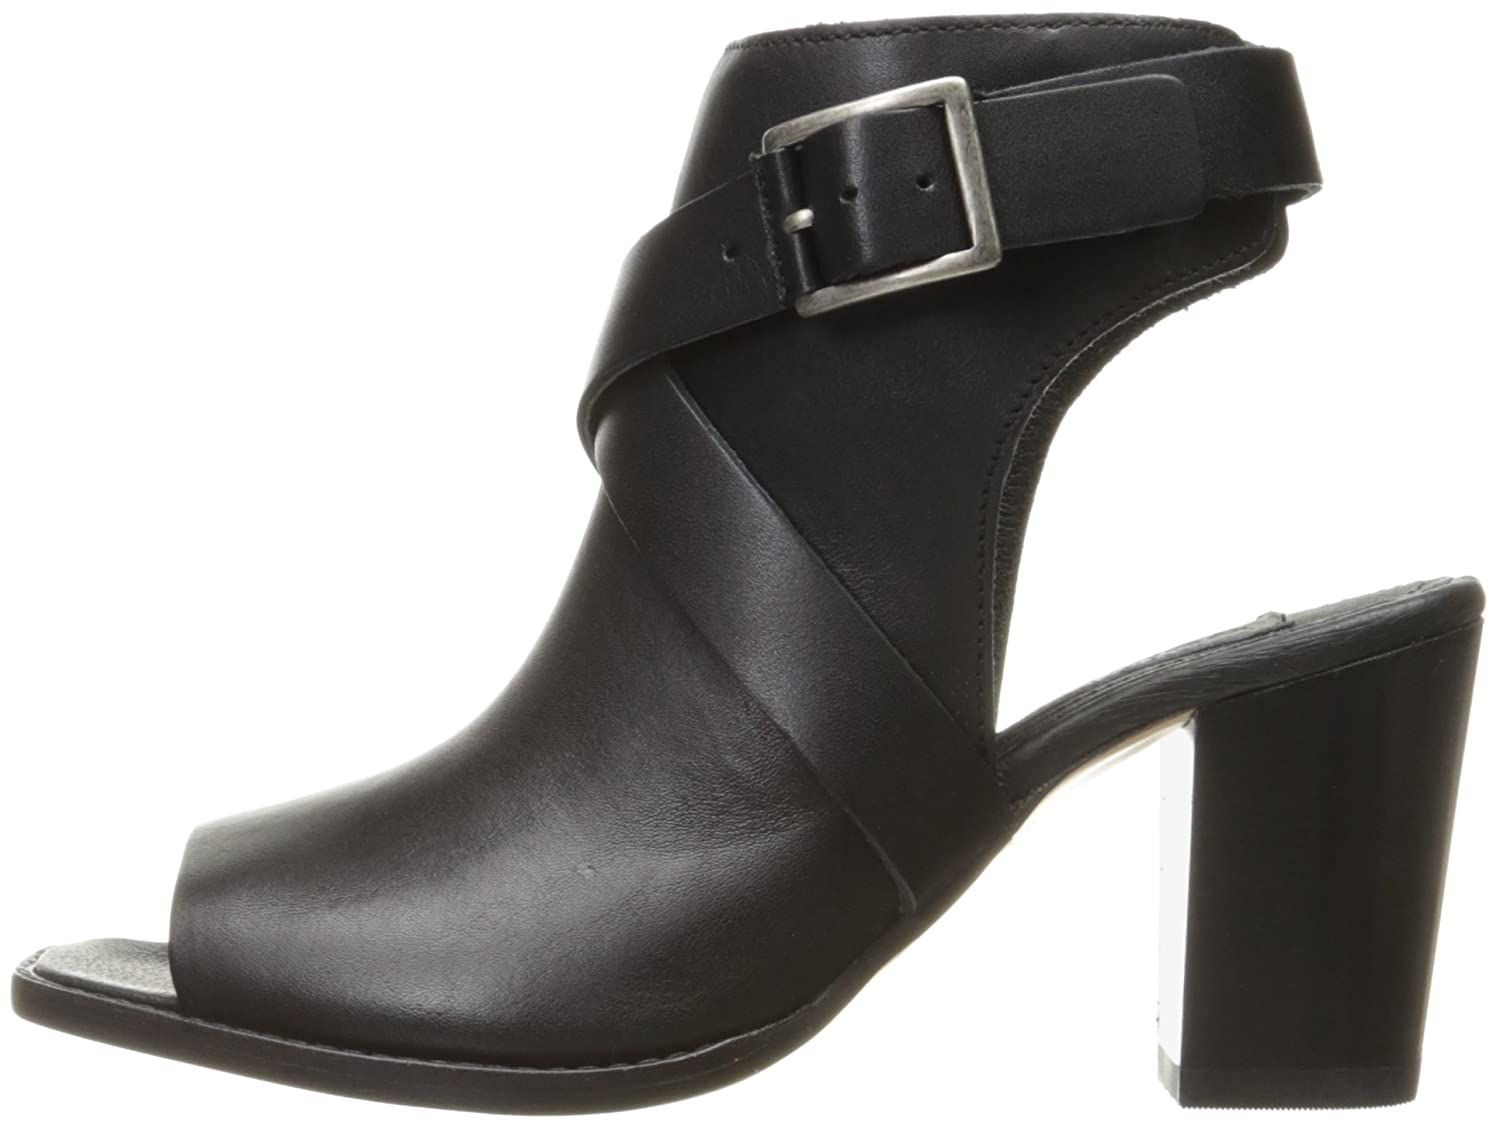 Wolverine 1883 by Women's Piper Open-Toe Boot B01IAOFDP4 8 B(M) US|Black Leather